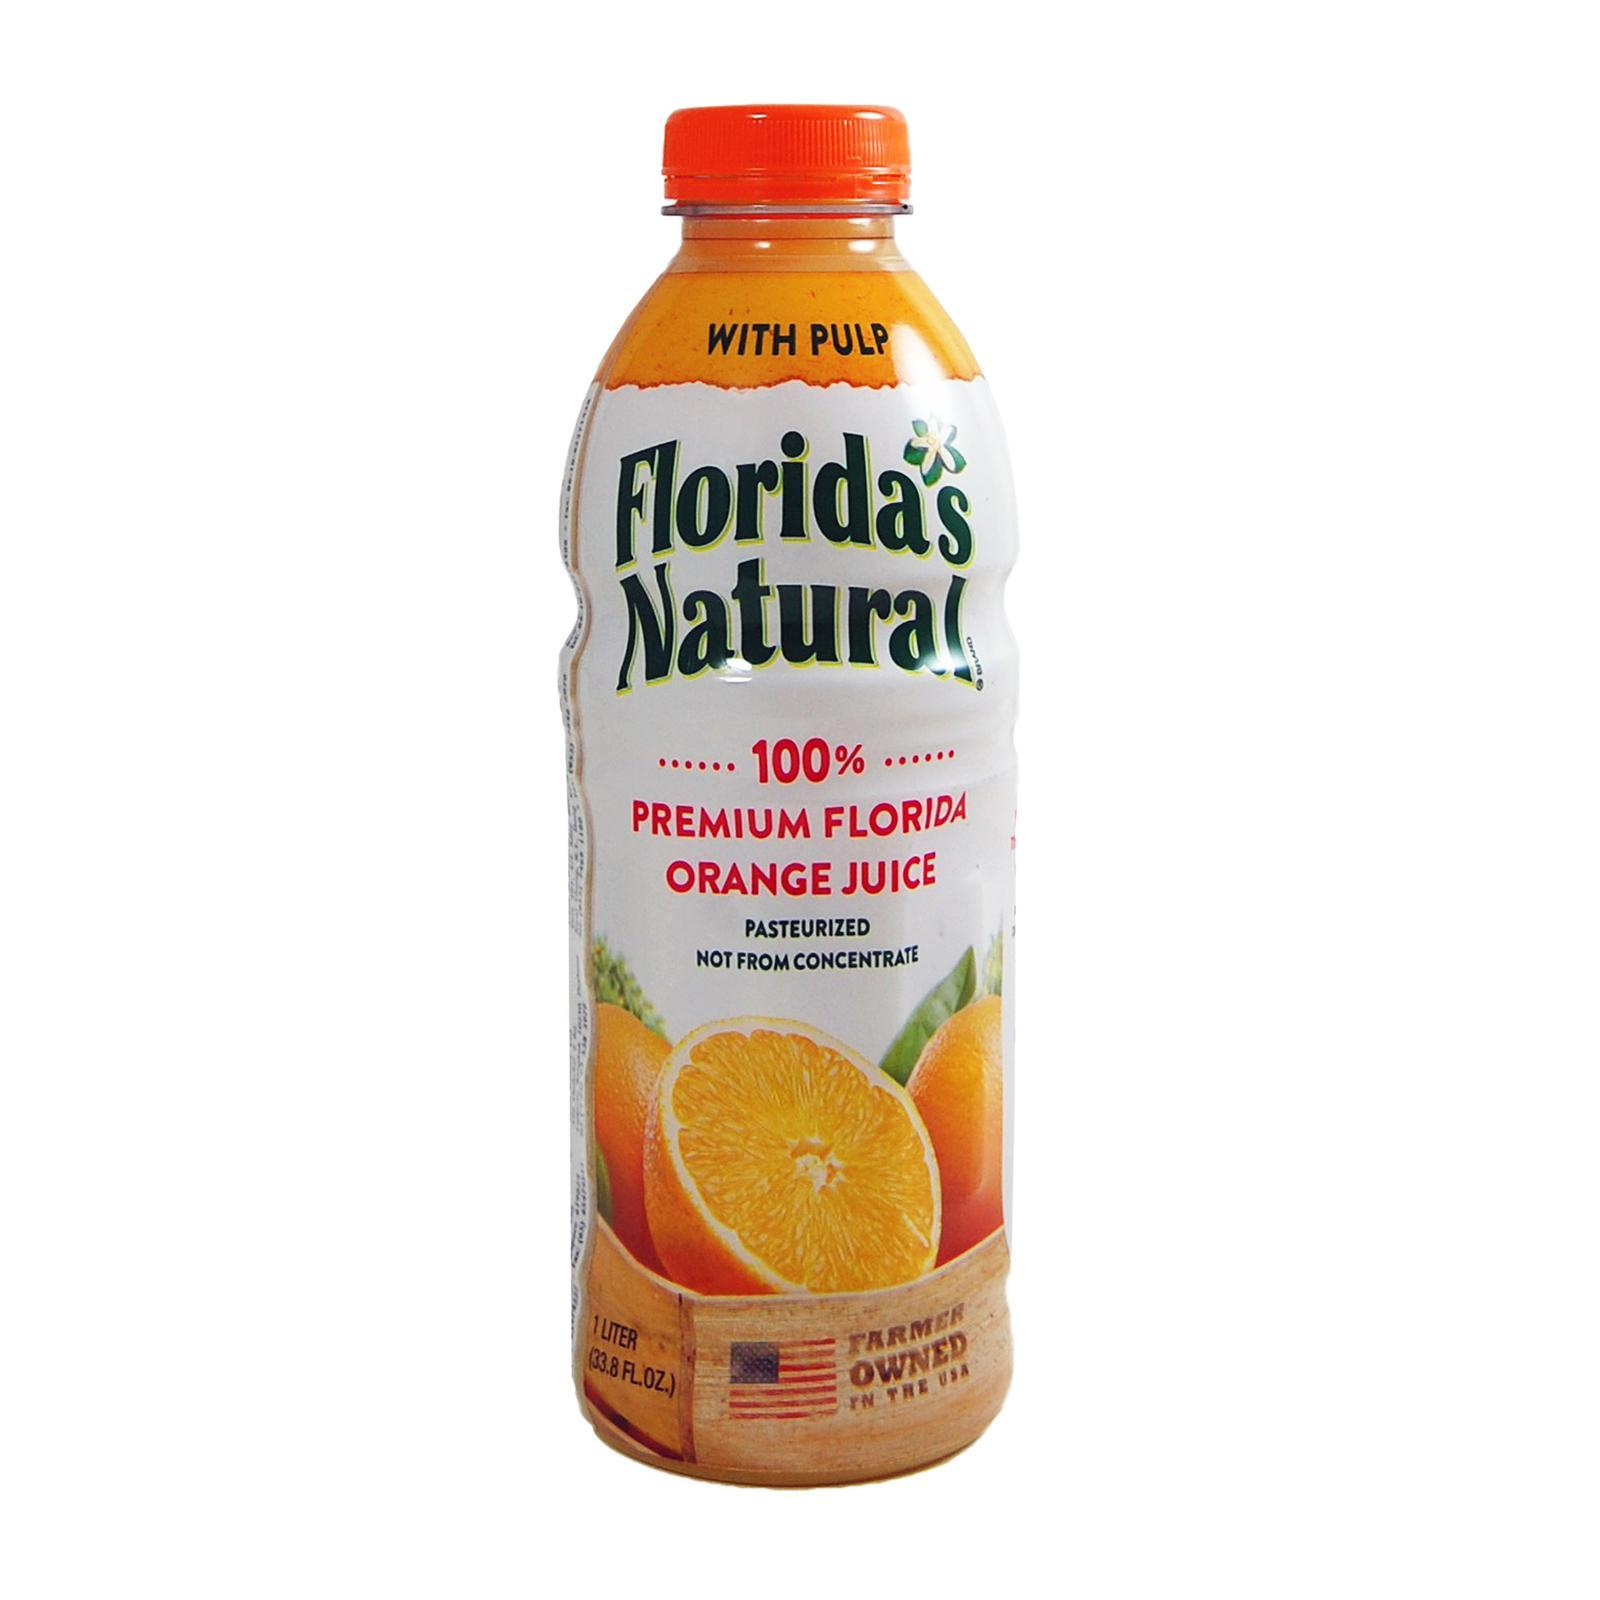 FLORIDA'S NATURAL Orange Juice With Pulp 1L